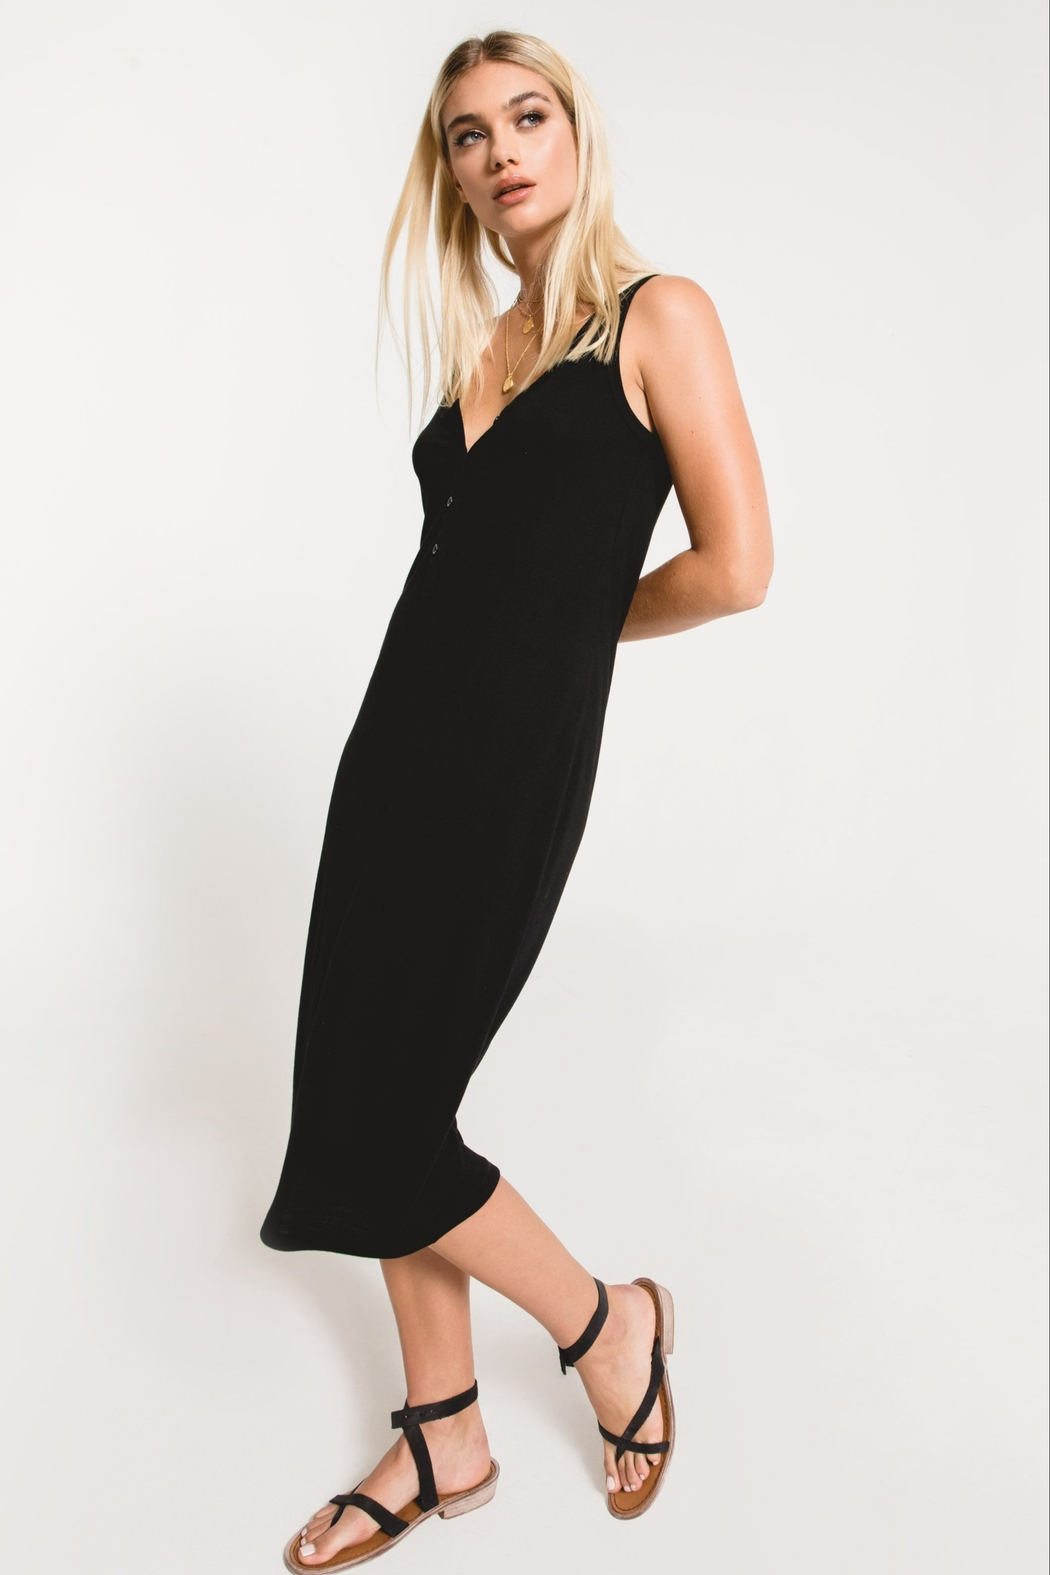 z supply The Meridian Dress - Back Cropped Image